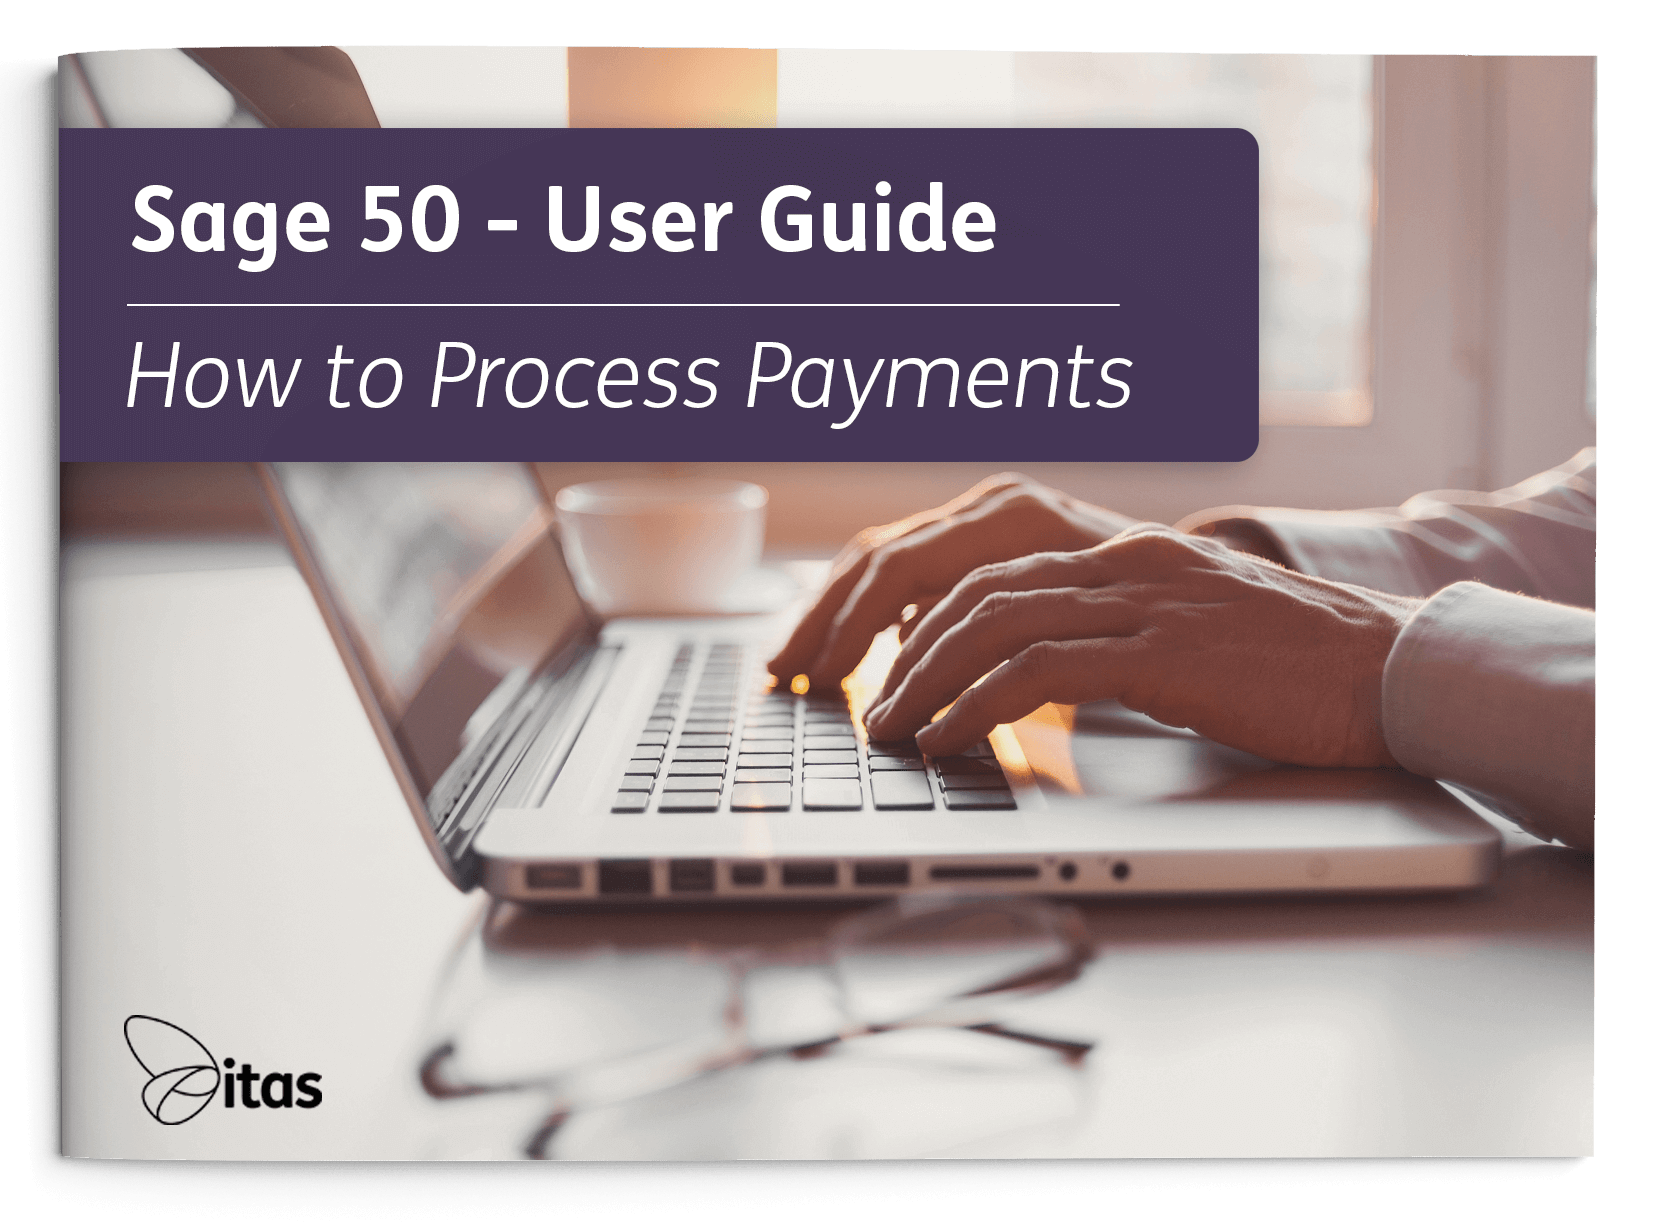 How to process payments in Sage 50 help guide